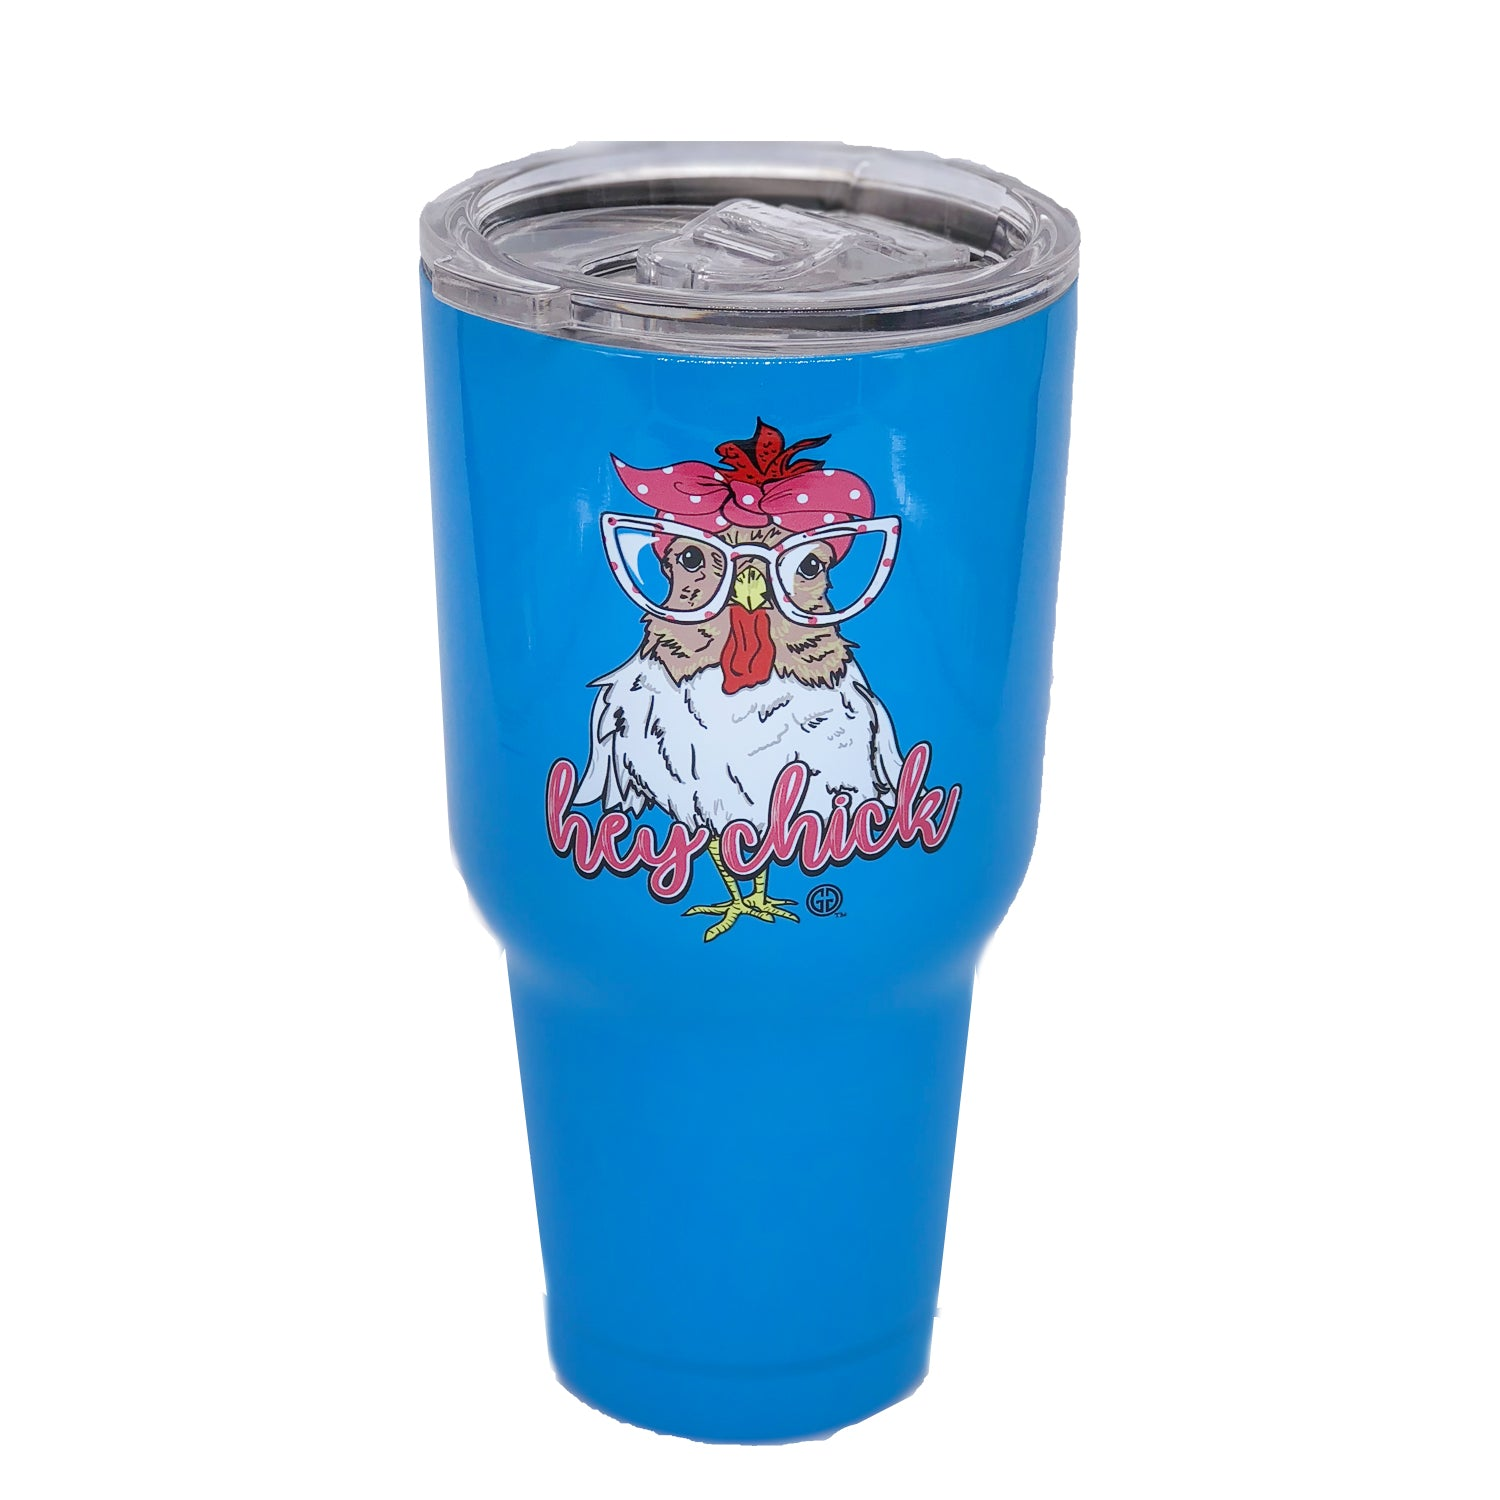 TB2468 Hey Chick Stainless Steel Tumbler